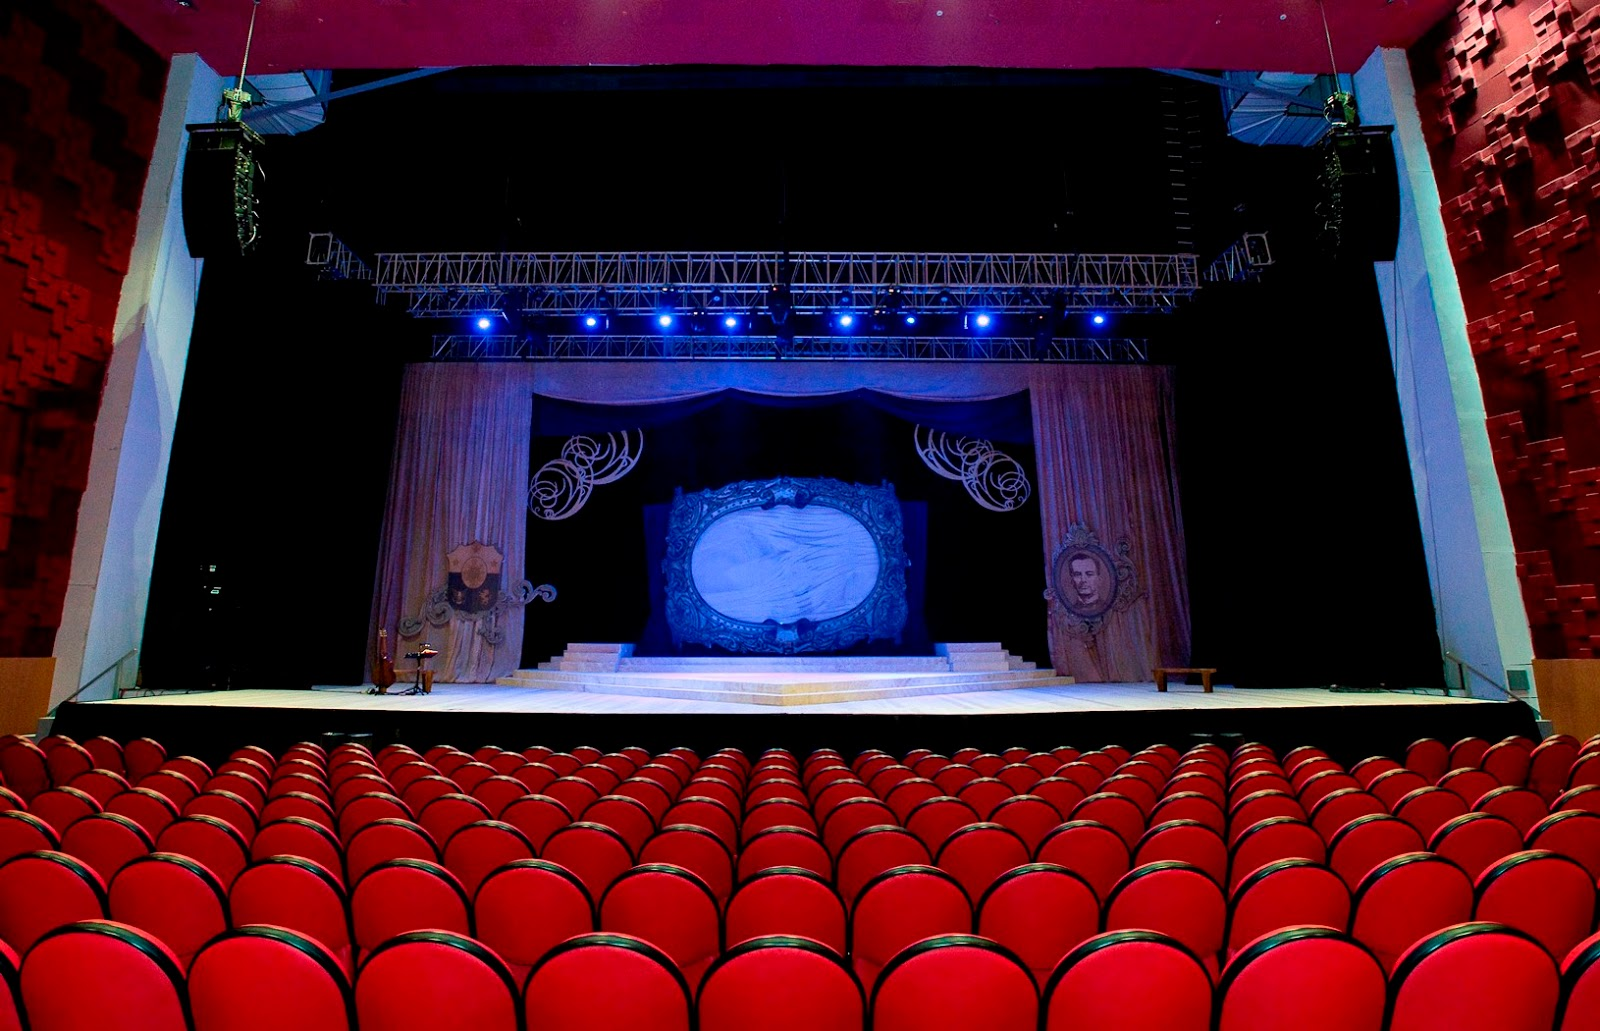 Everyday Adventures Kia Theatre Ready For Exciting Concerts